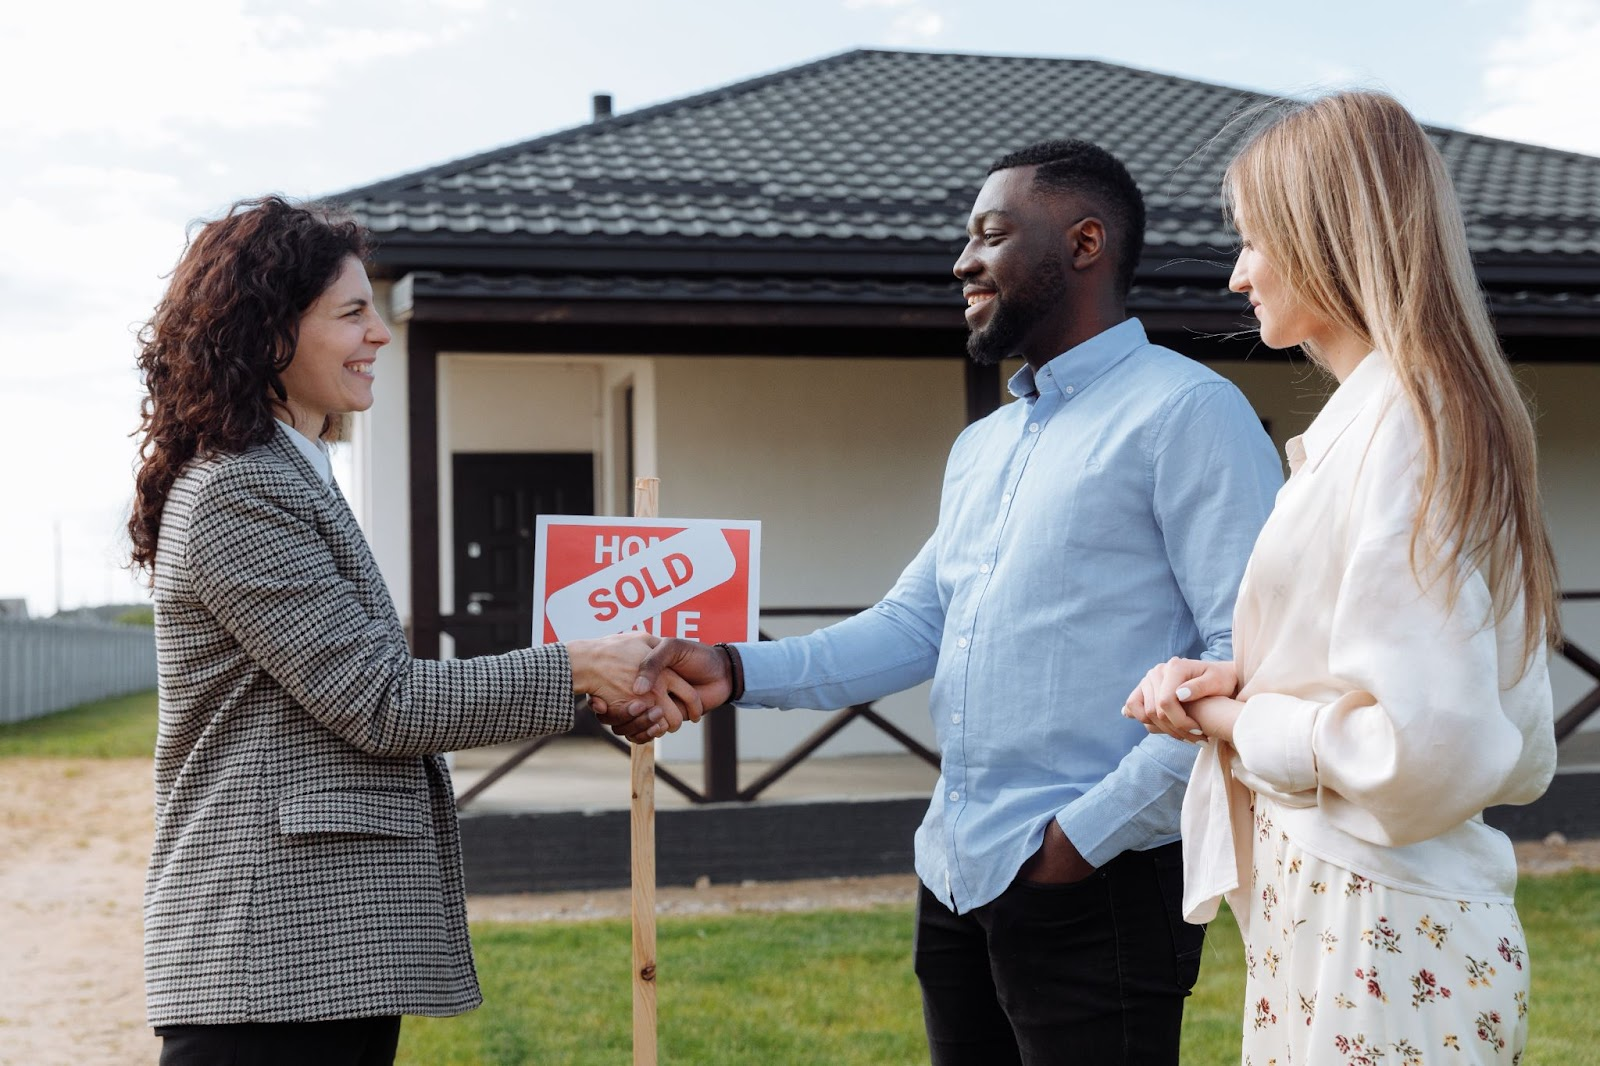 Real Estate Agent Closes a Sale with Buyers